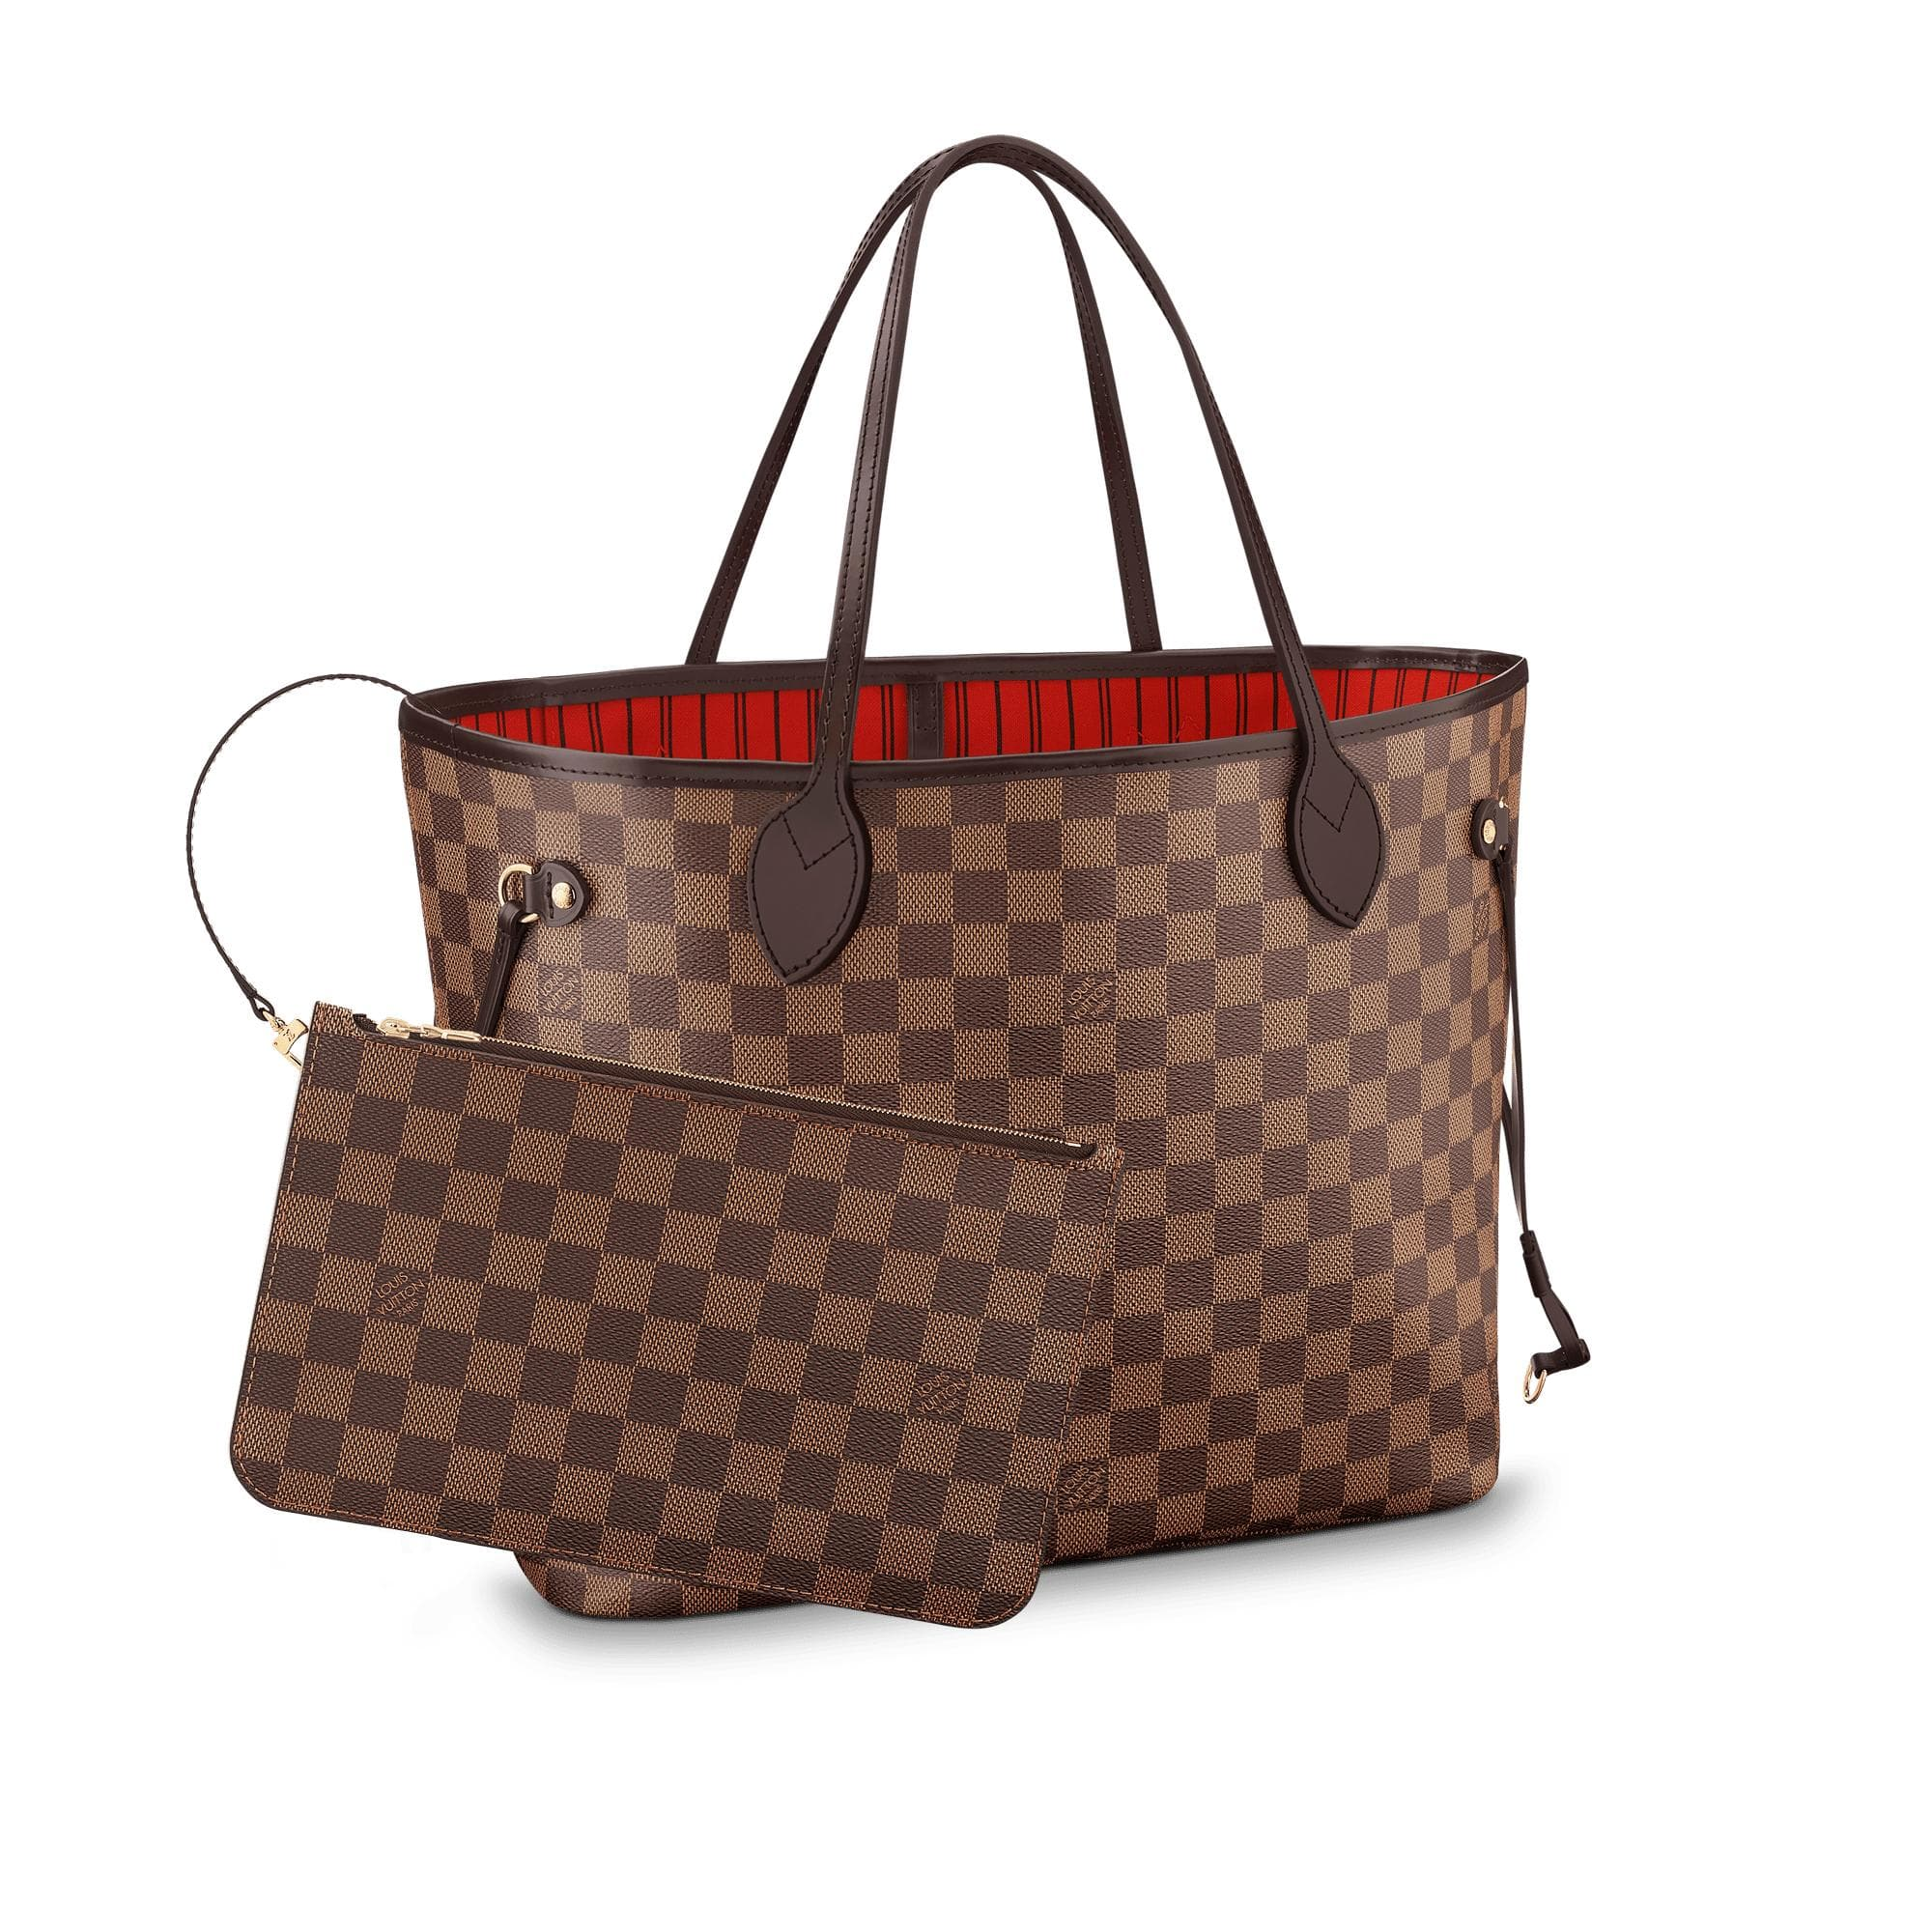 89ea2c61a louis-vuitton-neverfull-mm-damier-ebene-handbags–N41358_PM1_Other view